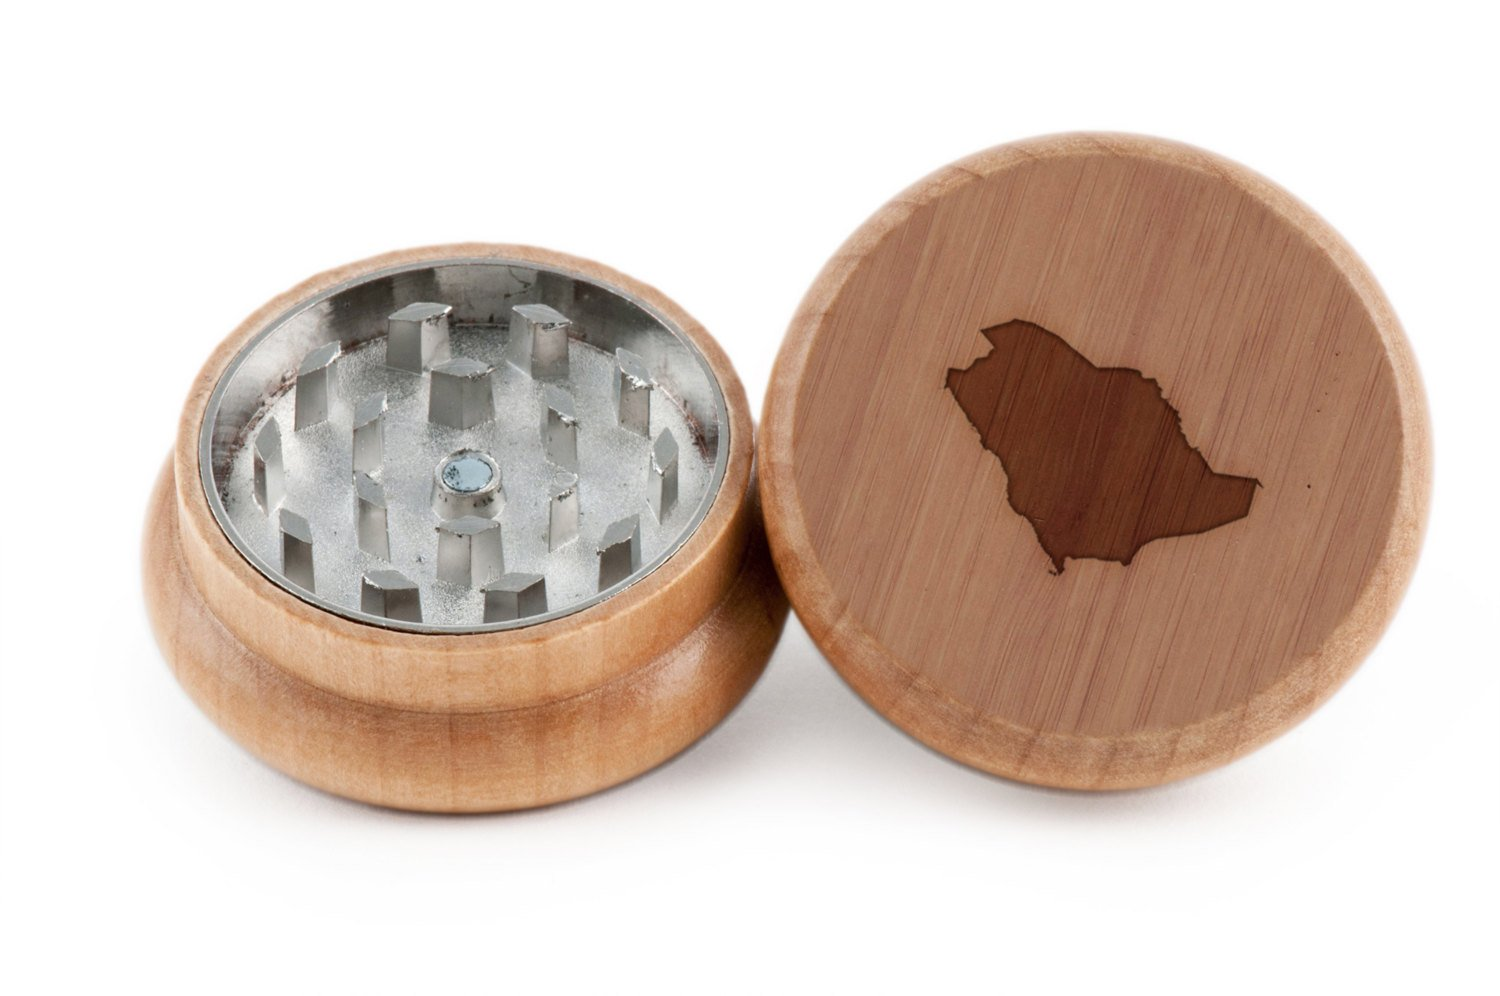 GRINDCANDY Spice And Herb Grinder - Laser Etched Saudi Arabia Design - Manual Oak Pepper Grinder